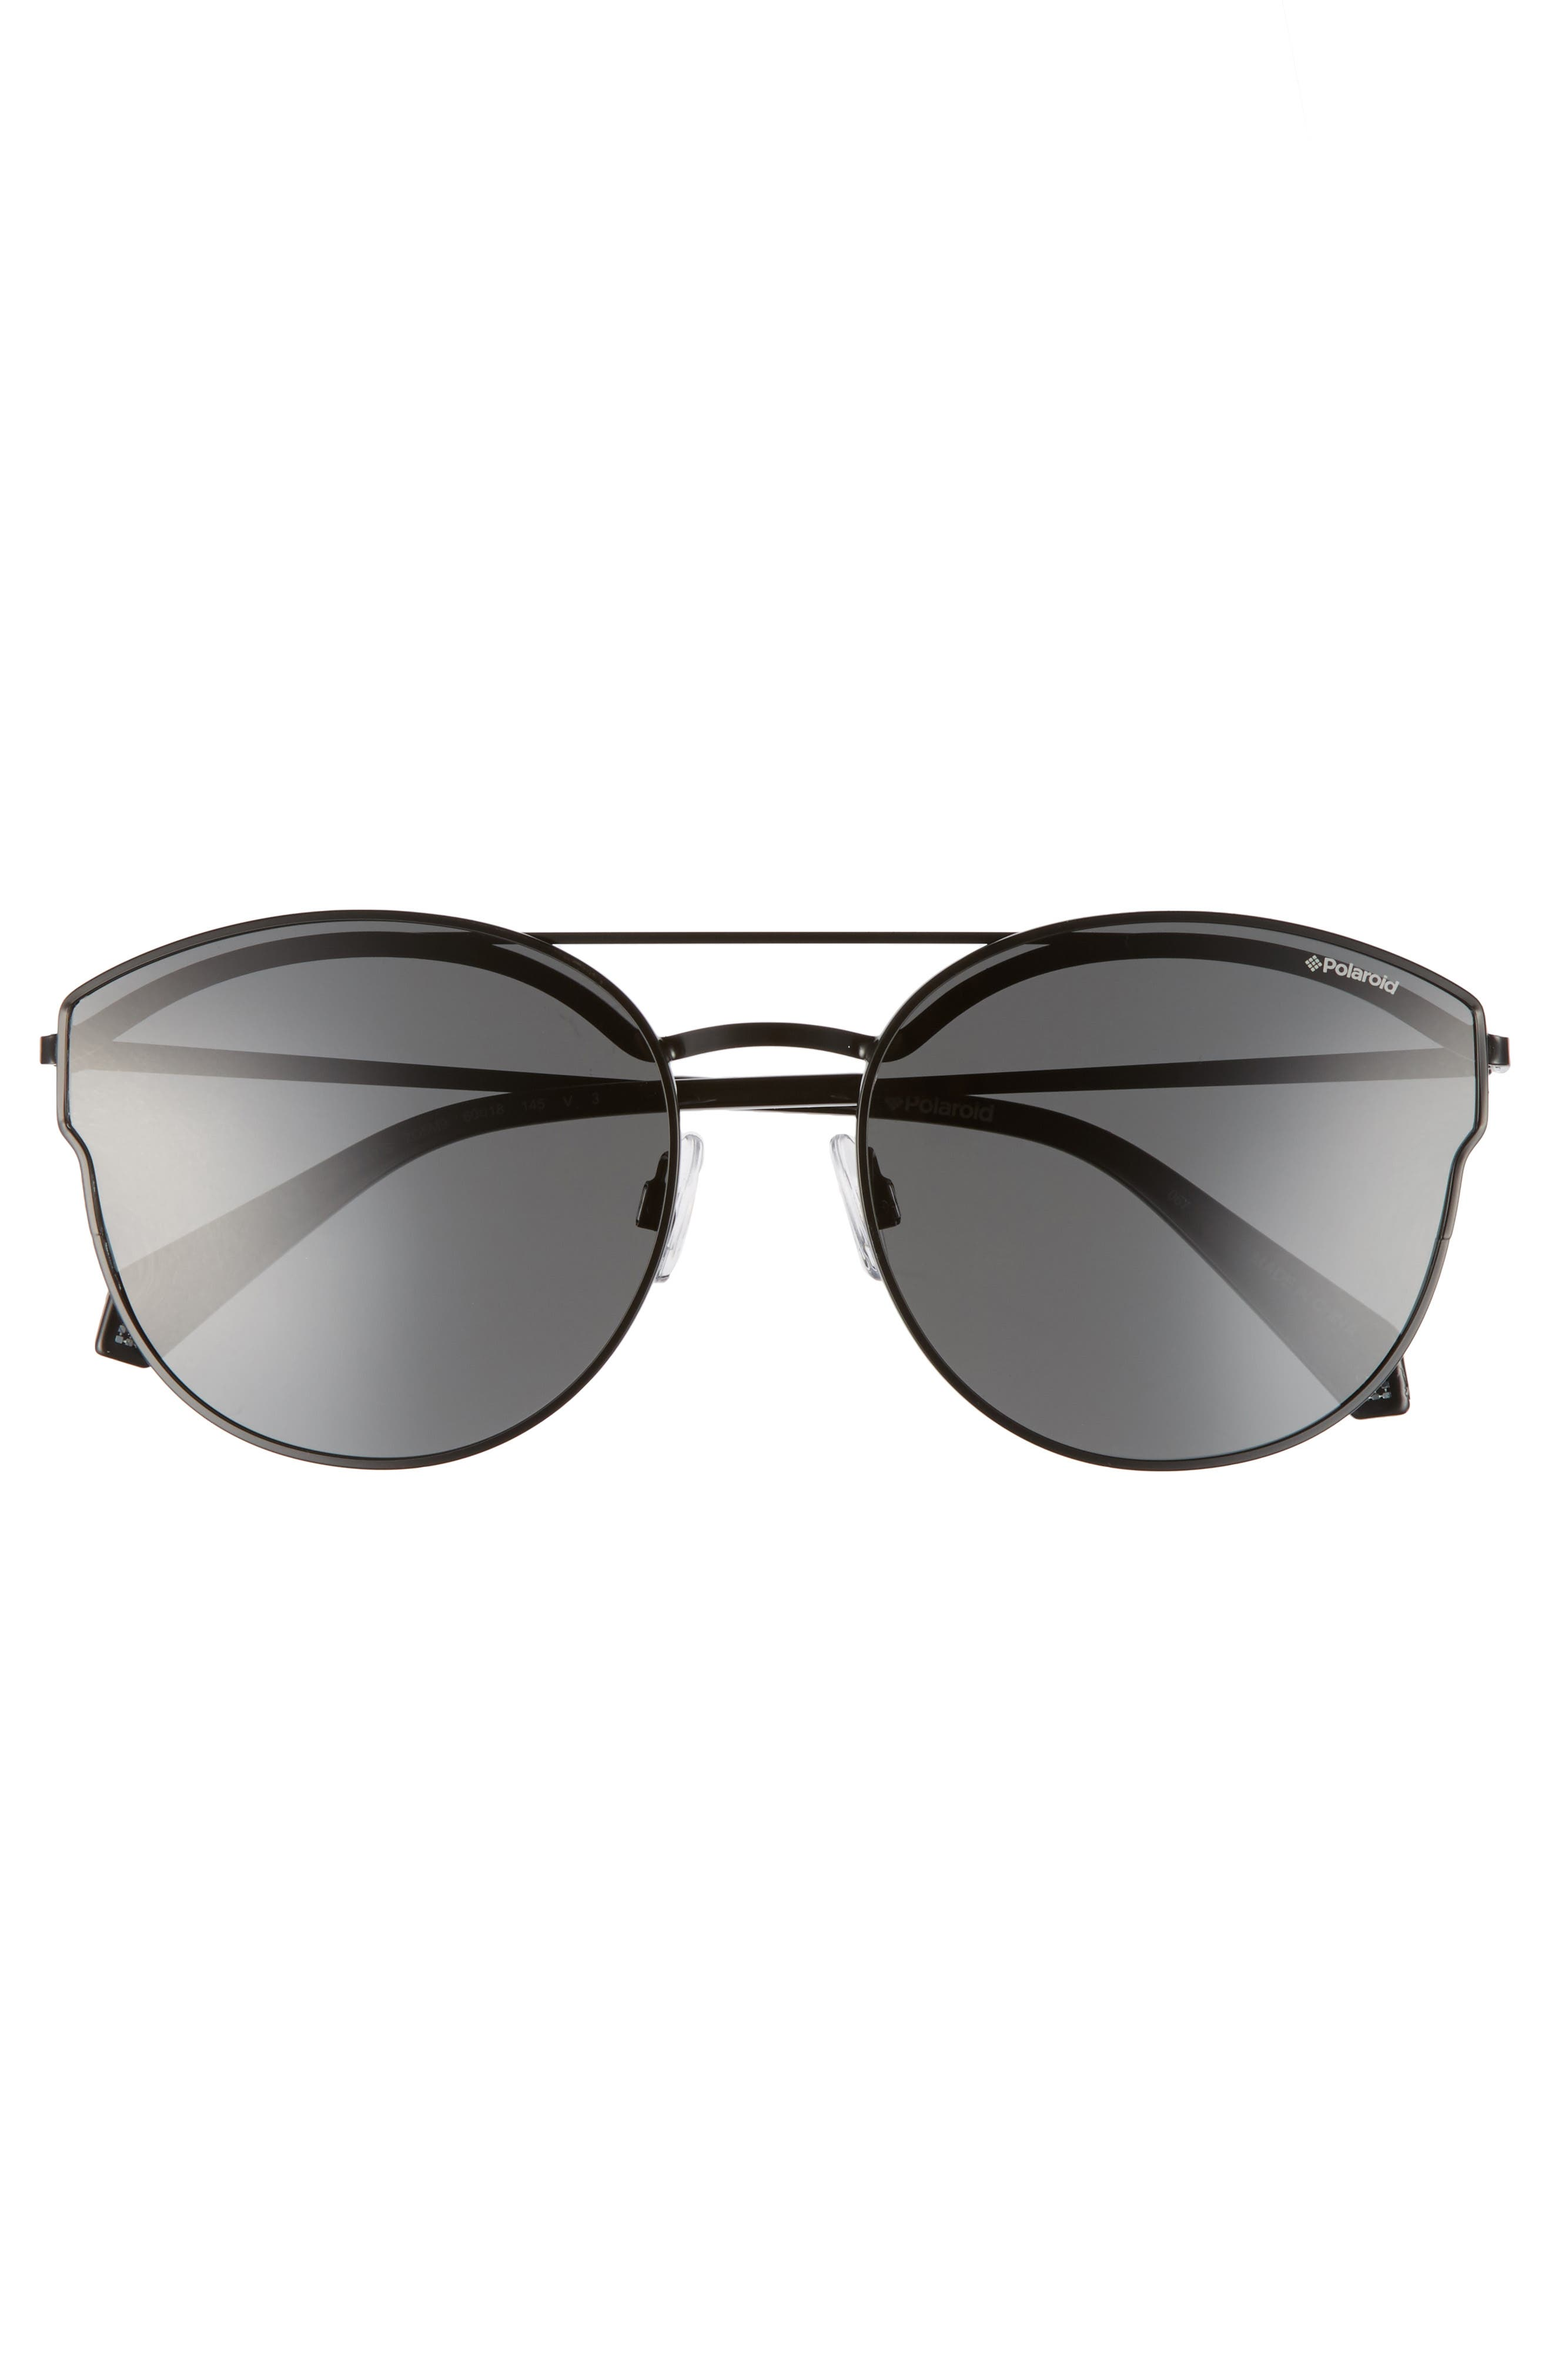 60mm Polarized Round Aviator Sunglasses,                             Alternate thumbnail 3, color,                             001